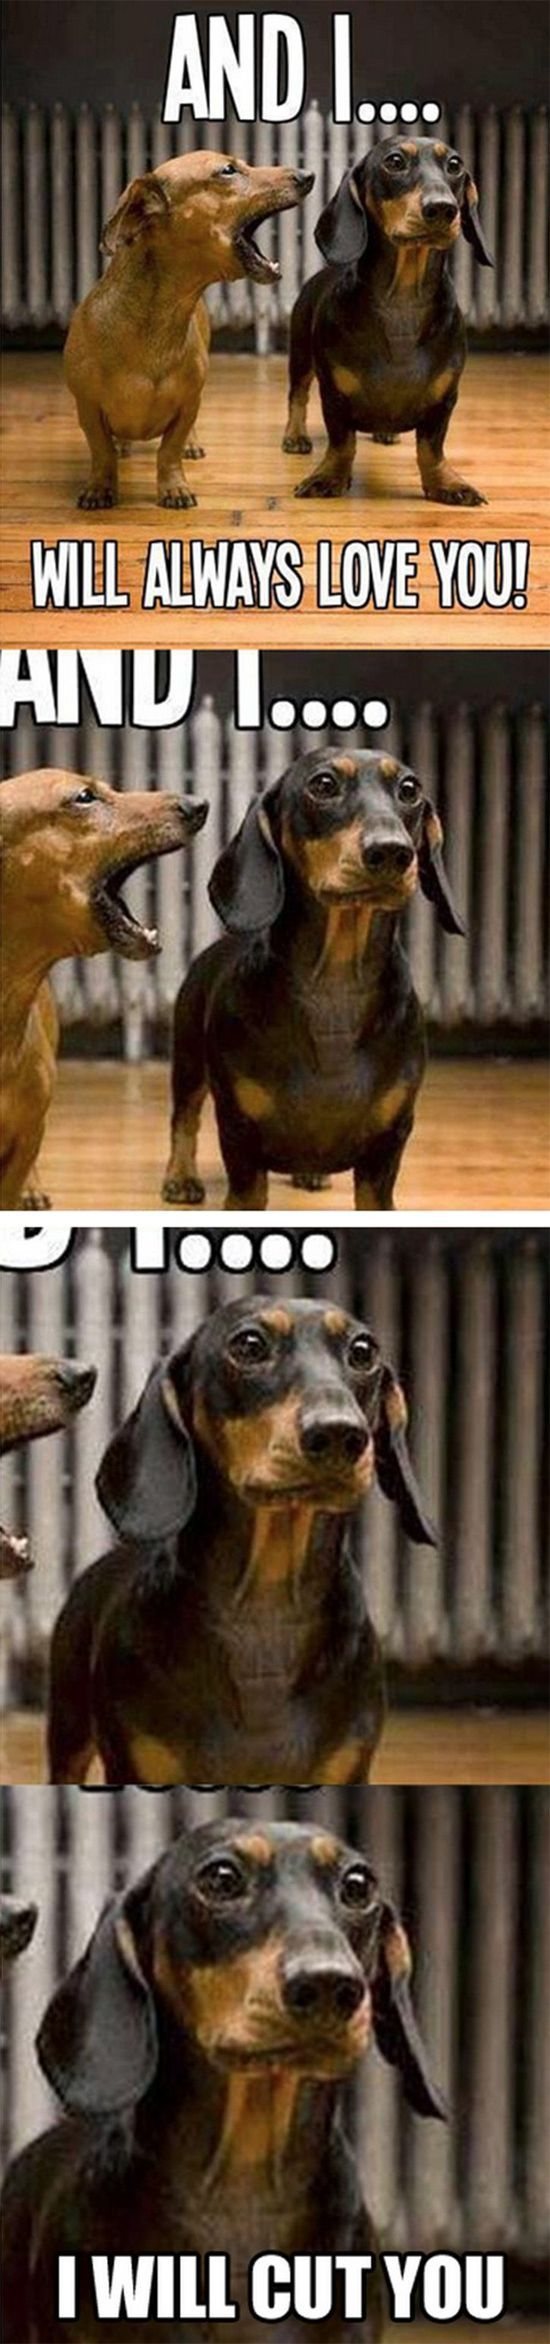 Top 25 Funny Animal Quotes #Funny